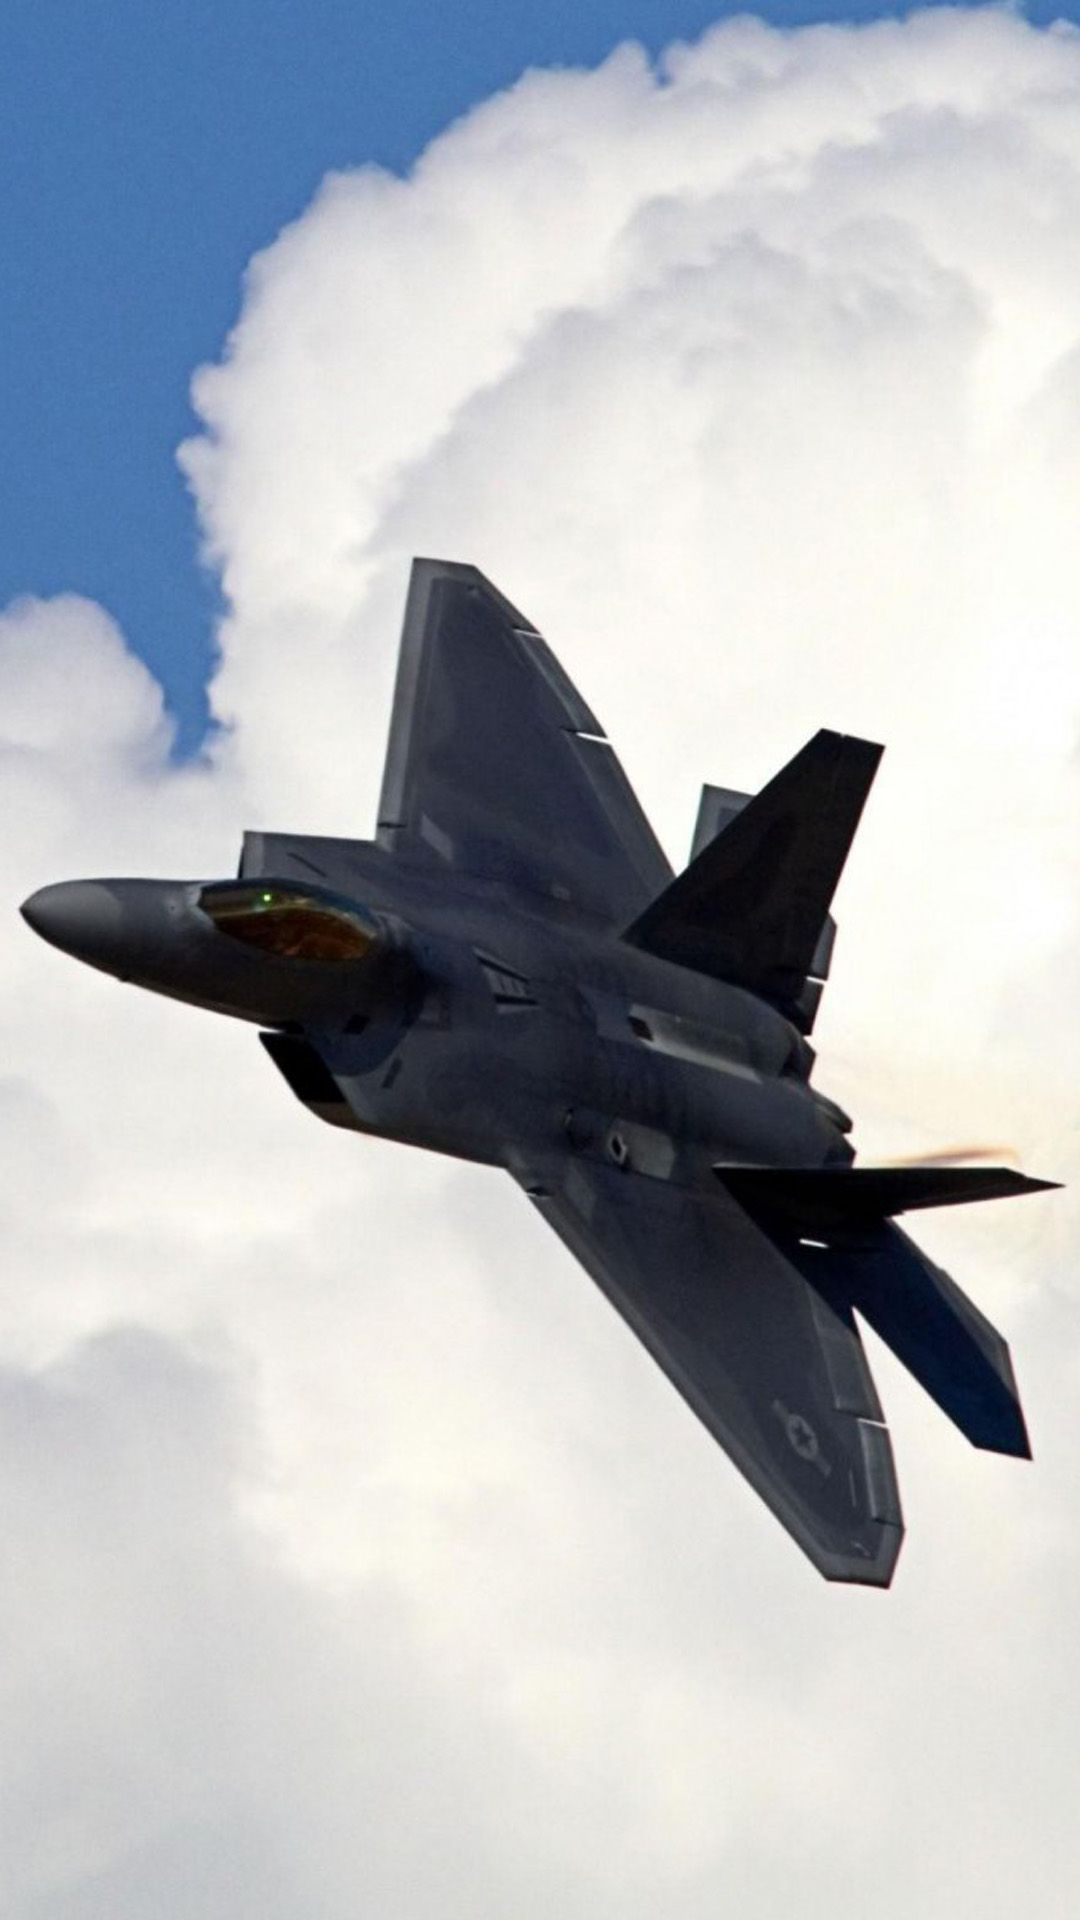 Military Iphone Wallpapers Top Free Military Iphone Backgrounds Wallpaperaccess Fighter Jets Aircraft Military Aircraft